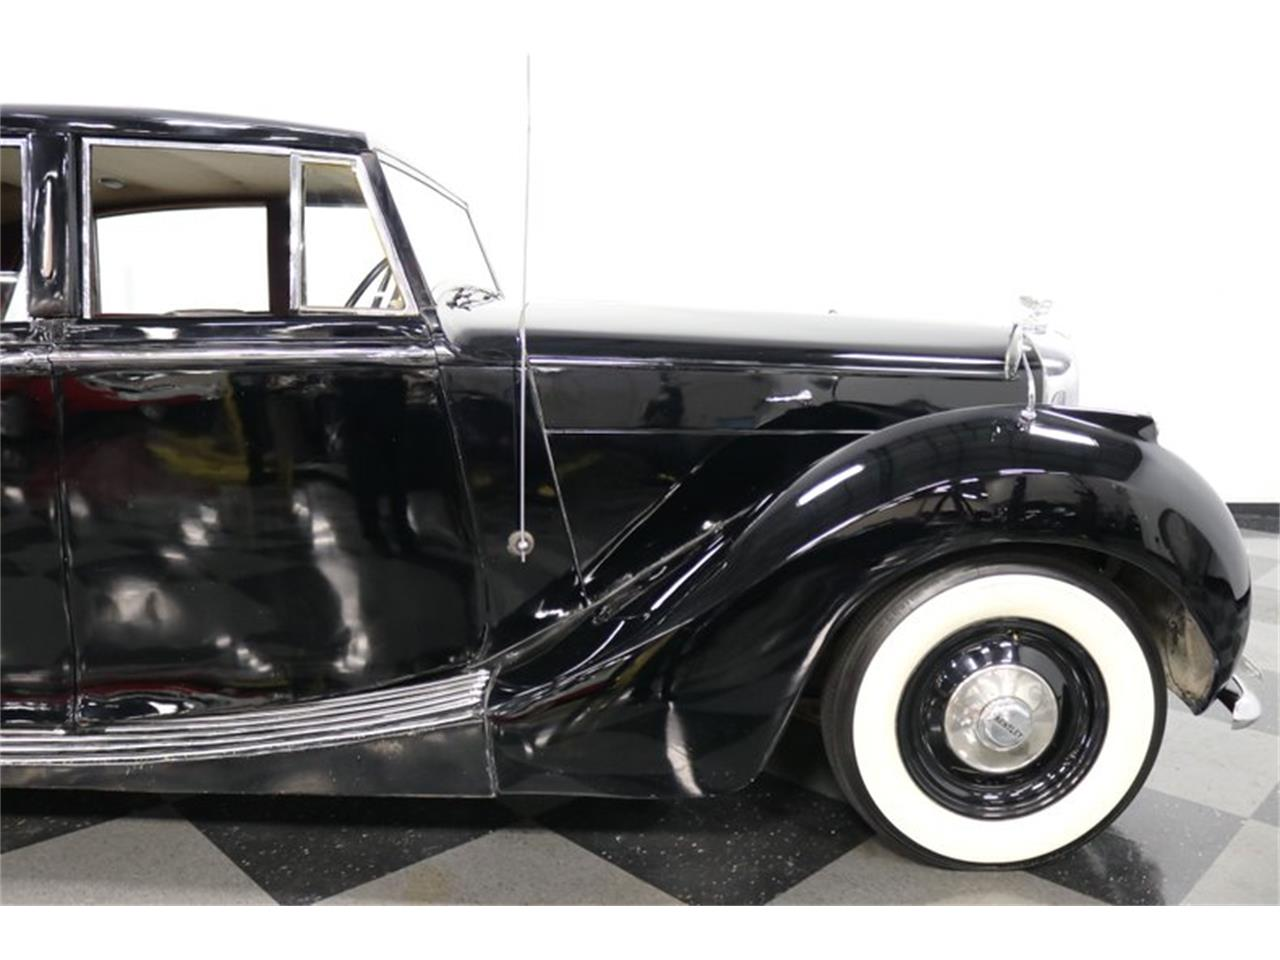 Large Picture of 1949 Mark VI located in Texas - $29,995.00 Offered by Streetside Classics - Dallas / Fort Worth - QPTN